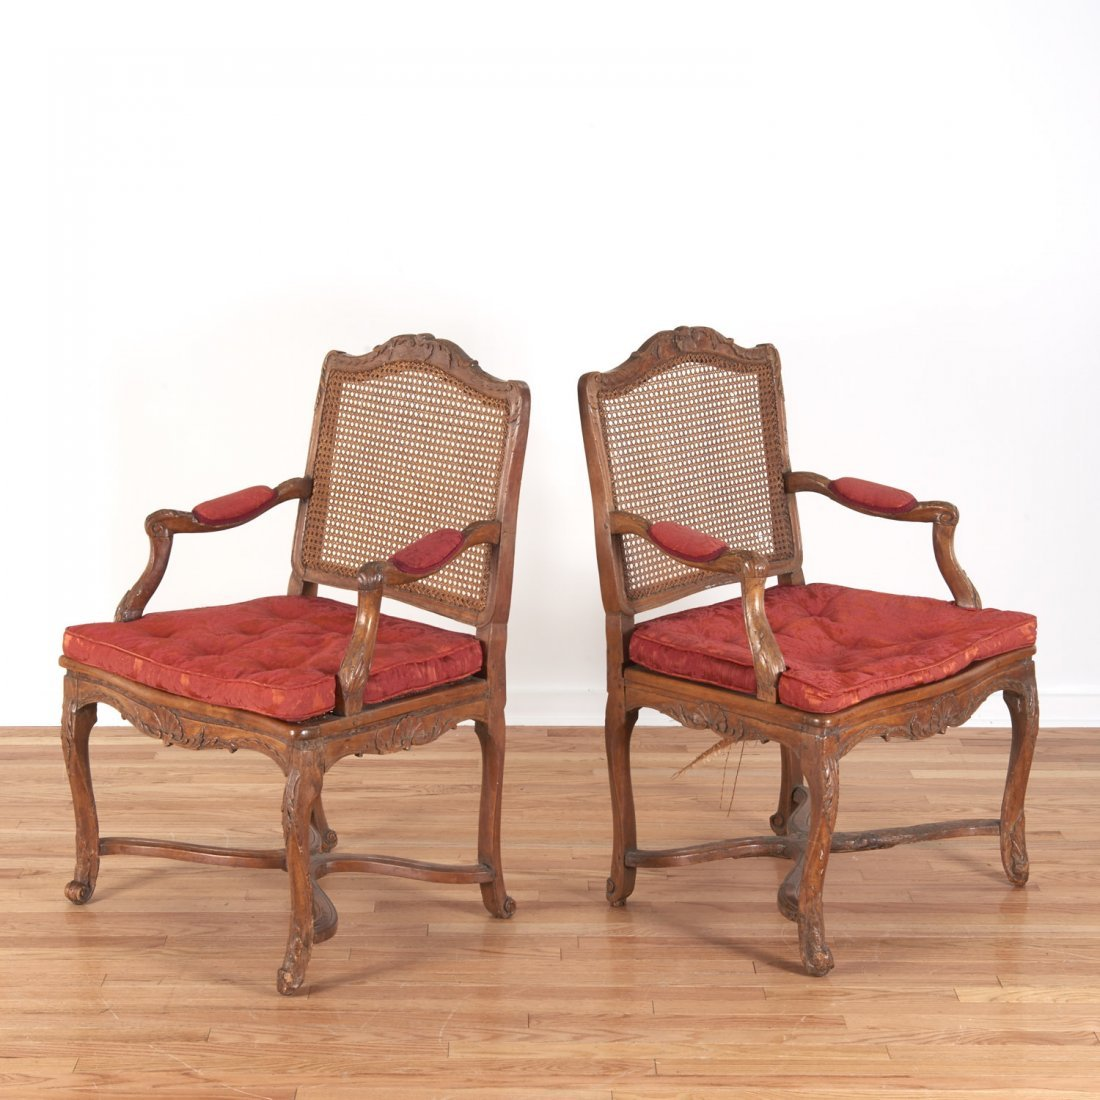 Pair Regence carved walnut open armchairs